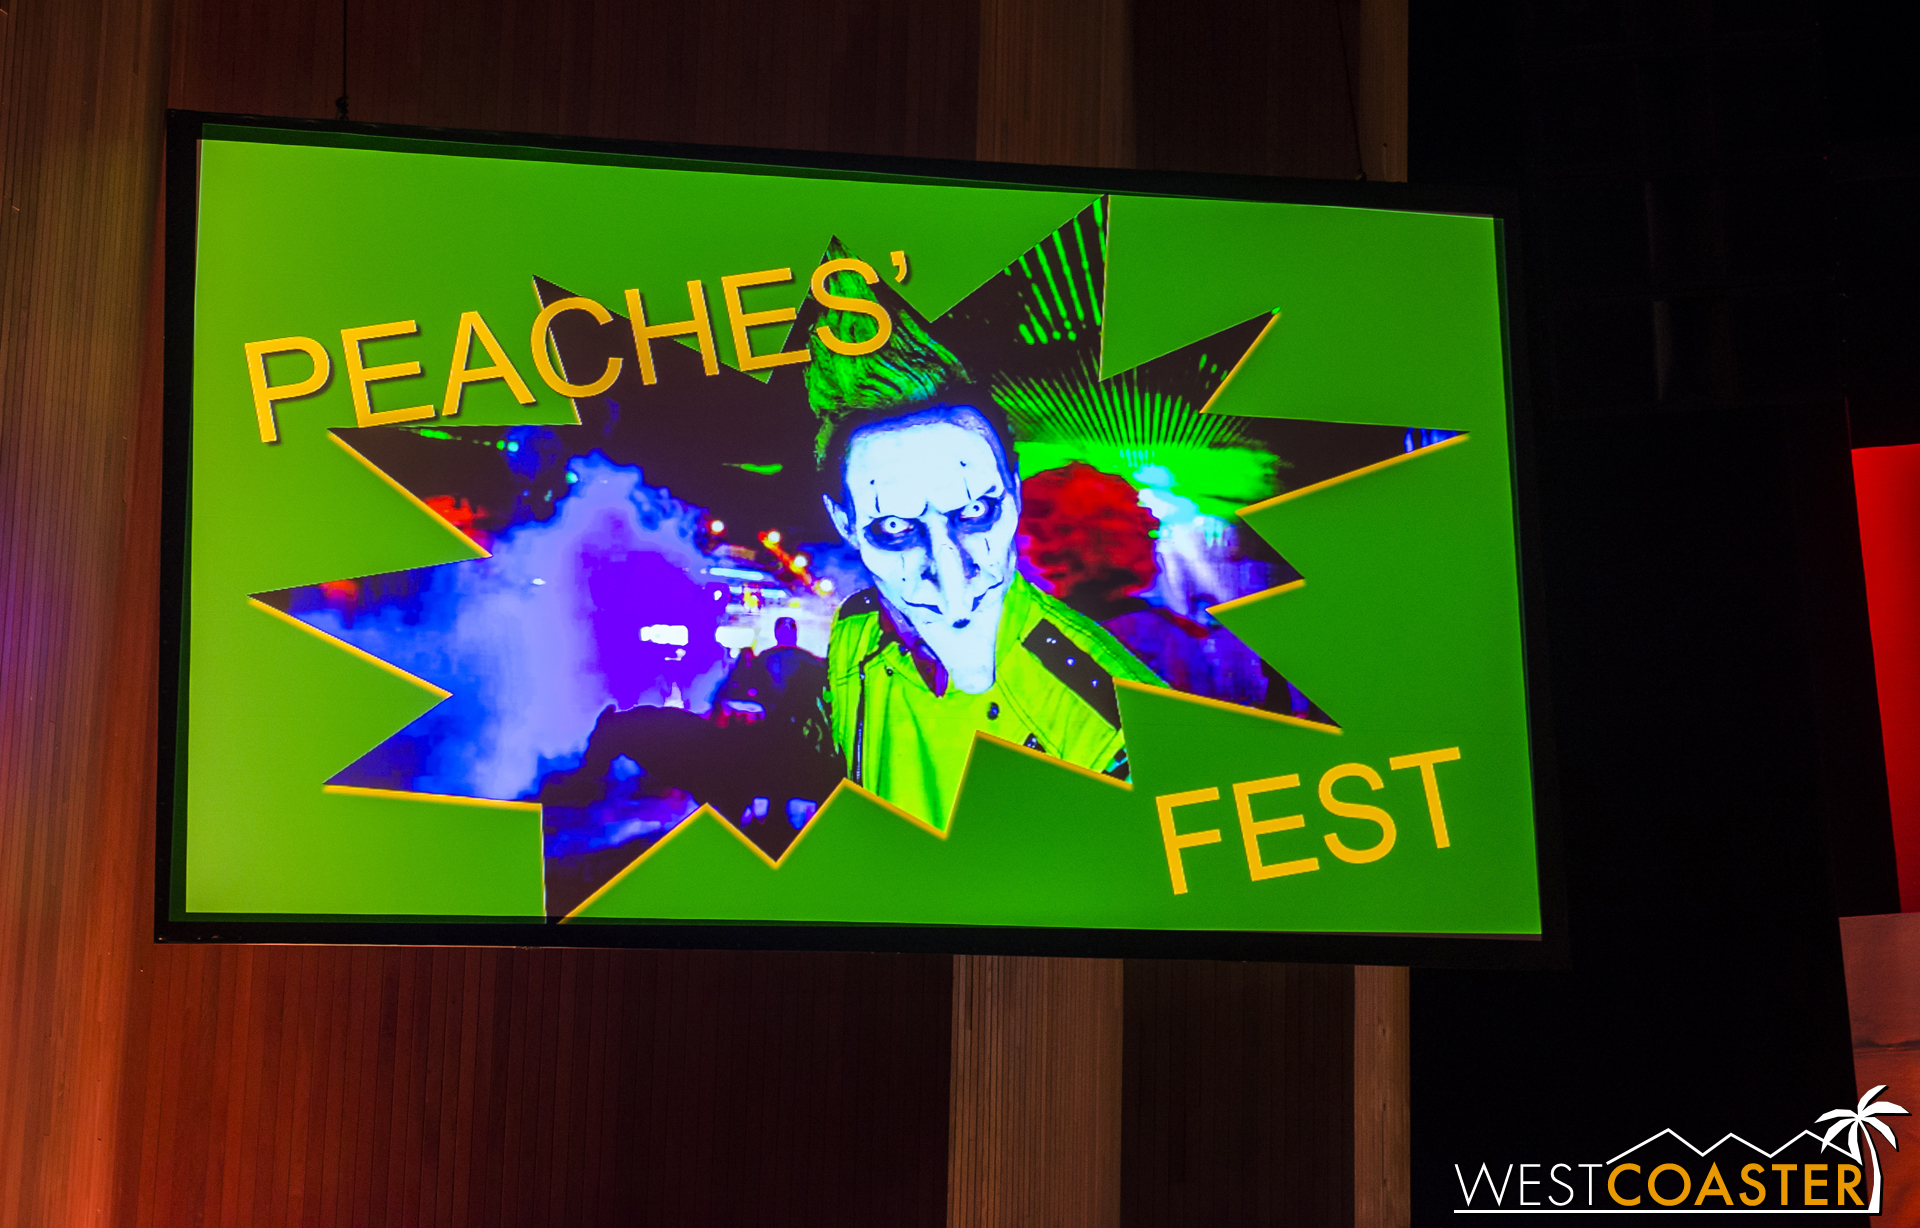 Initially, Peaches the Clown hijacked the show and tried to convince everyone that this year, Fright Fest would actually be Peaches' Fest.